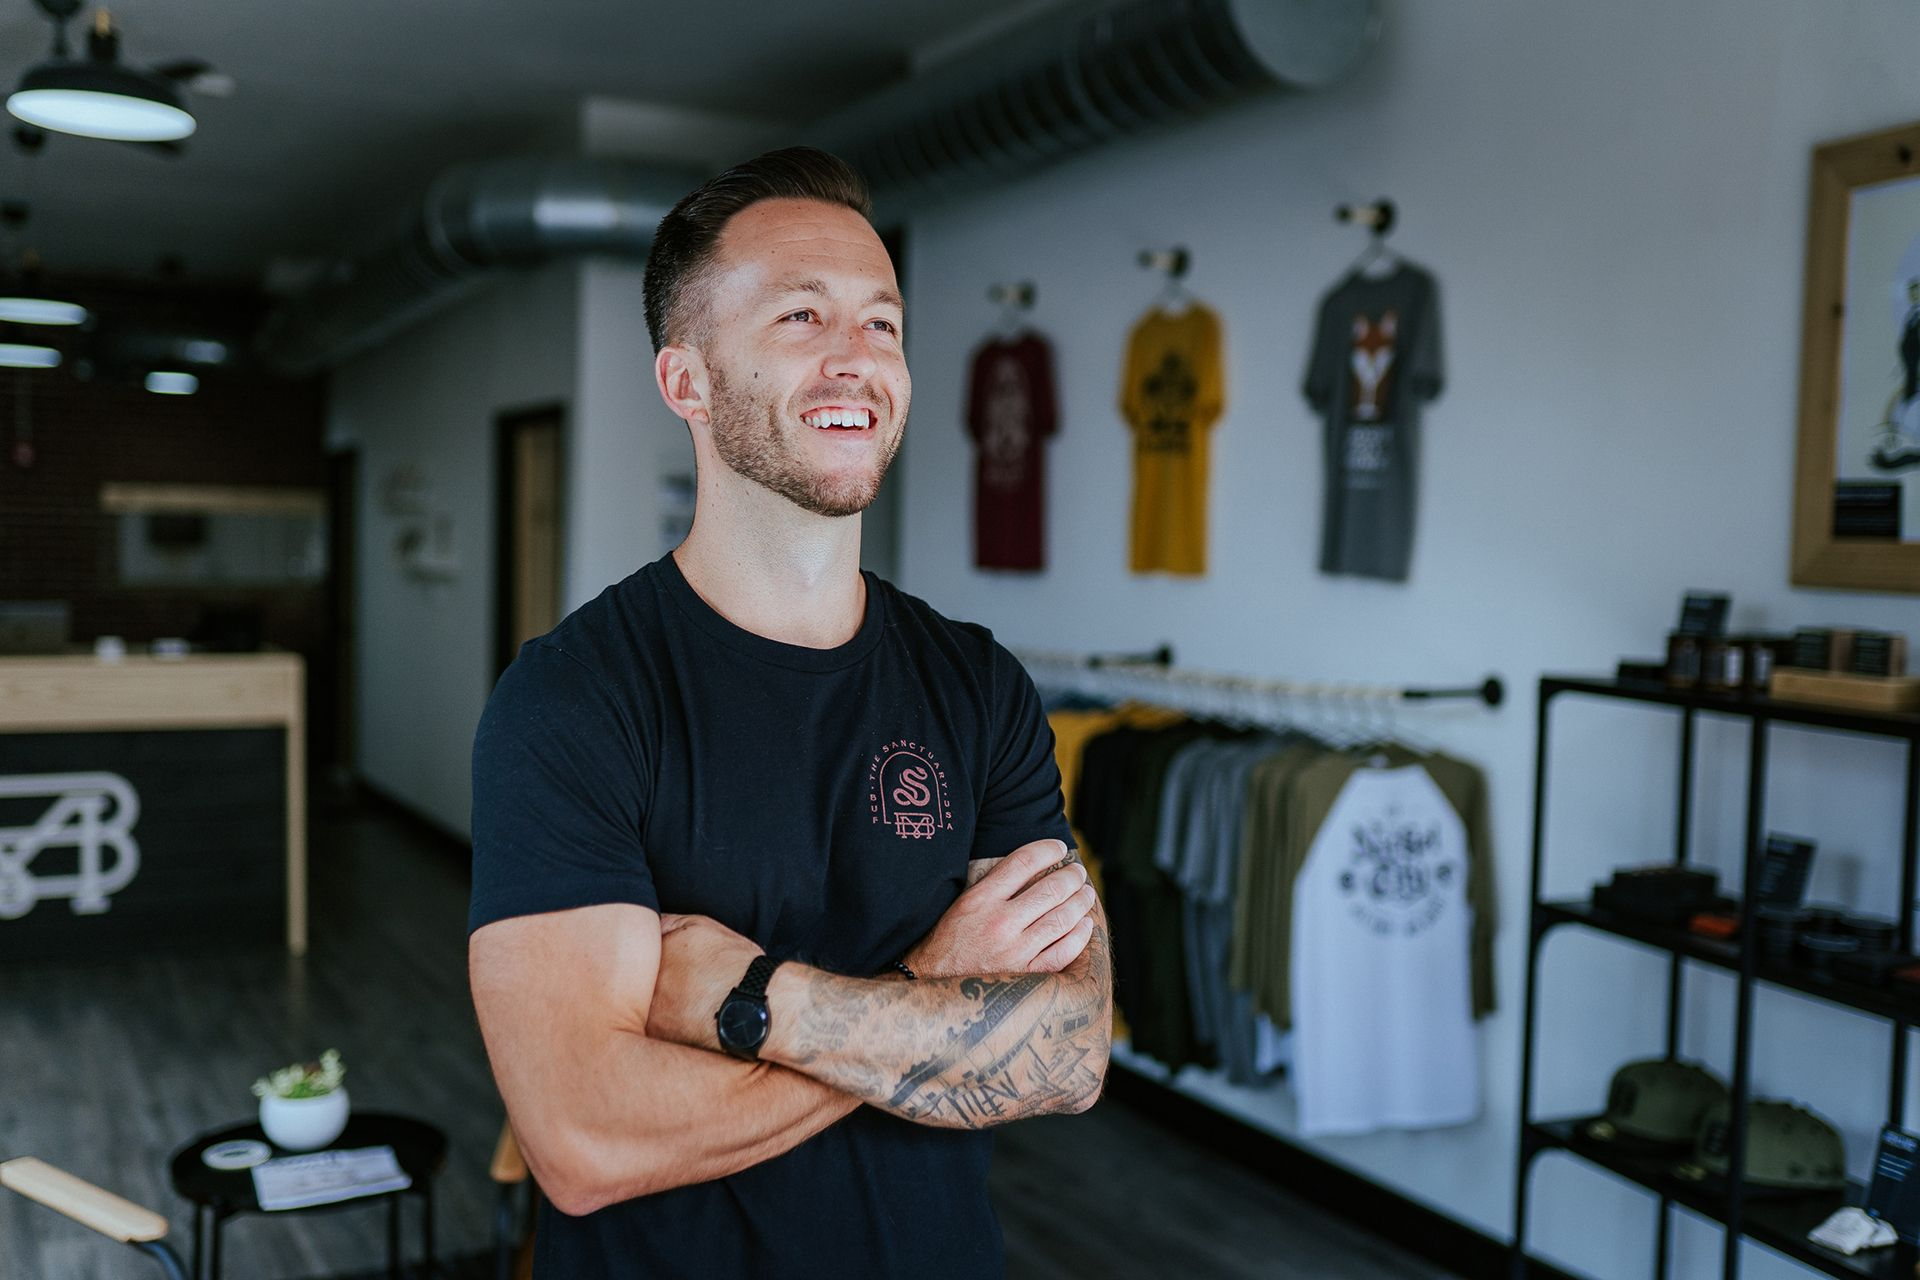 Buffalo Made Co owner, Rob smiling with arms folded at the front of his retail store